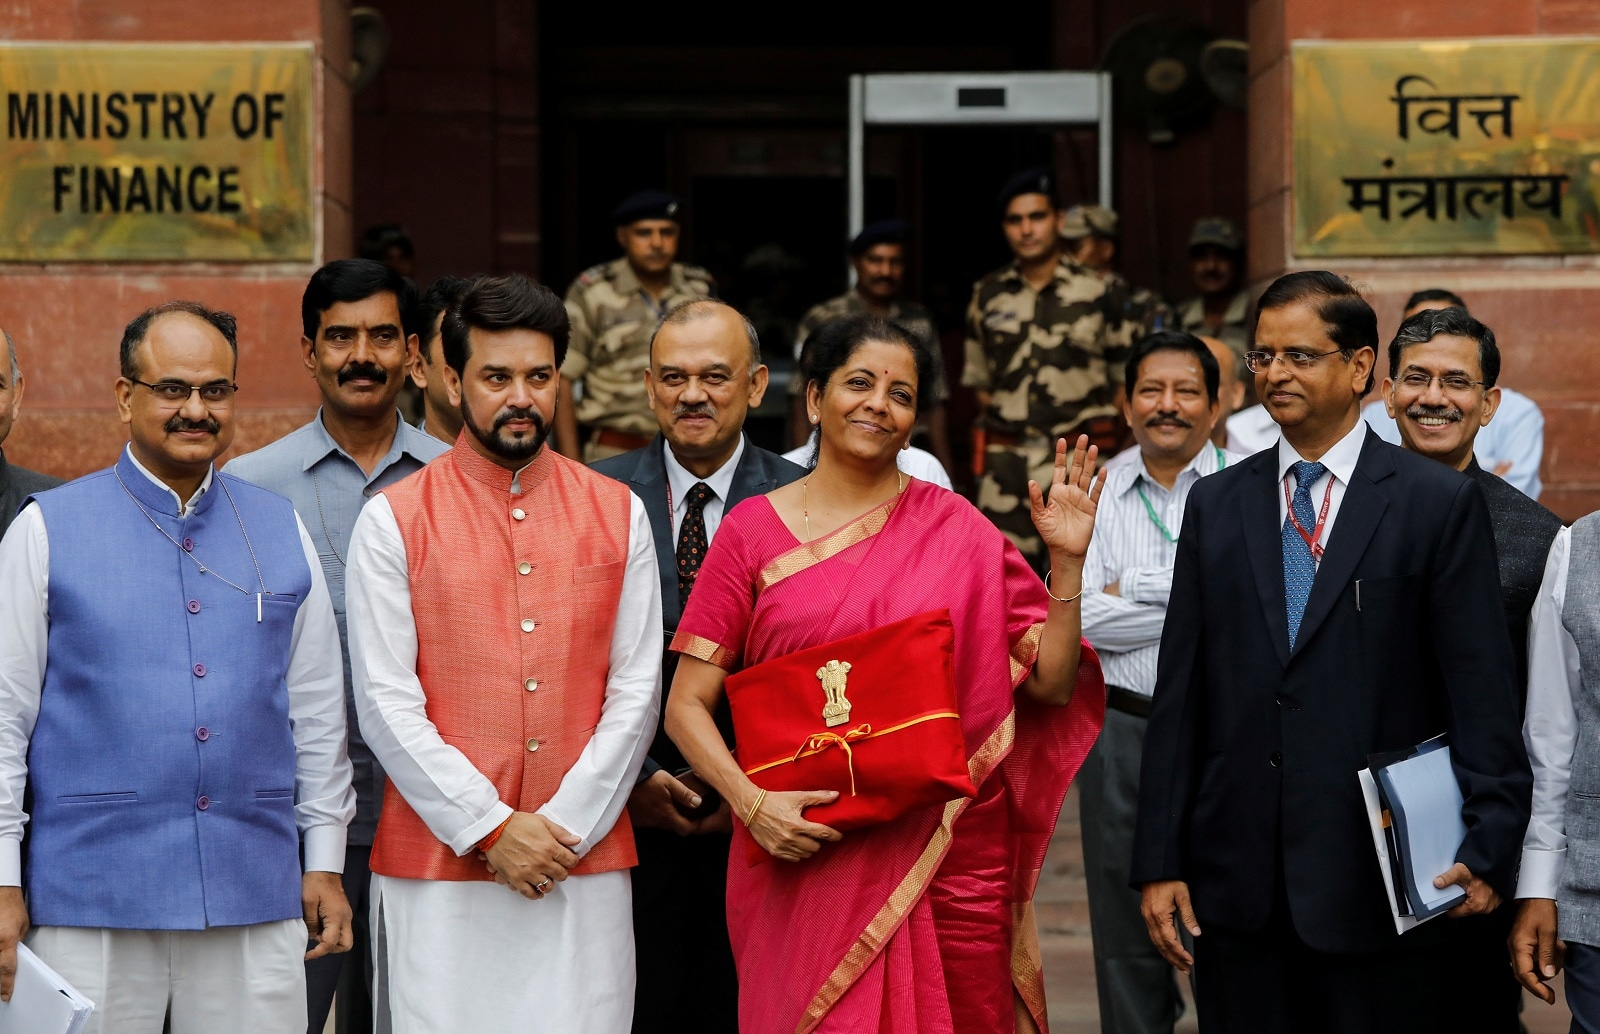 India's Finance Minister Nirmala Sitharaman (C) gestures during a photo opportunity as she leaves her office to present the federal budget in the parliament in New Delhi, July 5, 2019. The government has proposed to increase the minimum public shareholding to 35 percent from 25 percent. REUTERS/Anushree Fadnavis